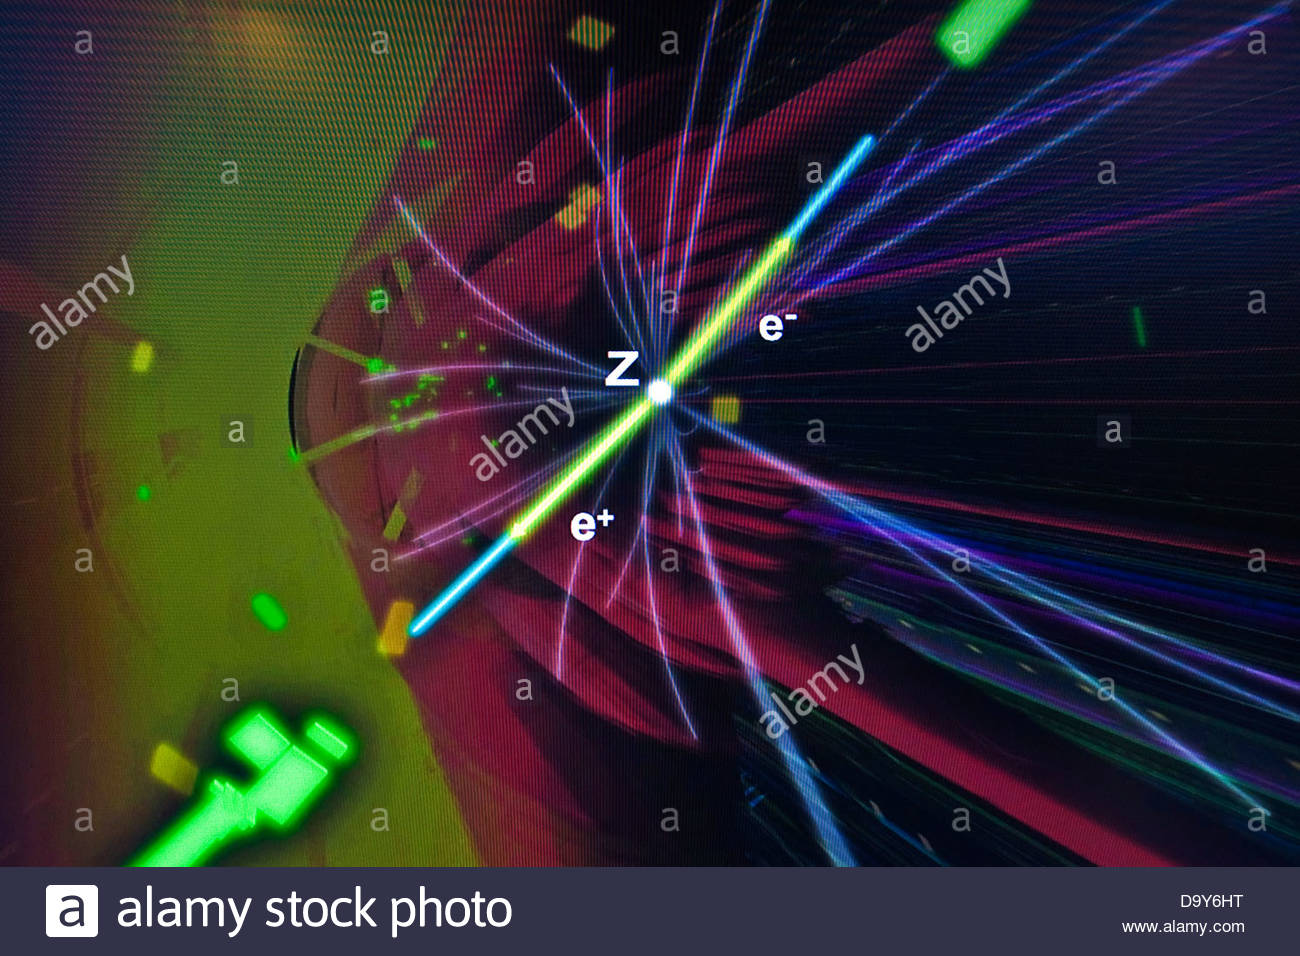 CERN,European Organization for Nuclear Research,Geneva,Switzerland - Stock Image